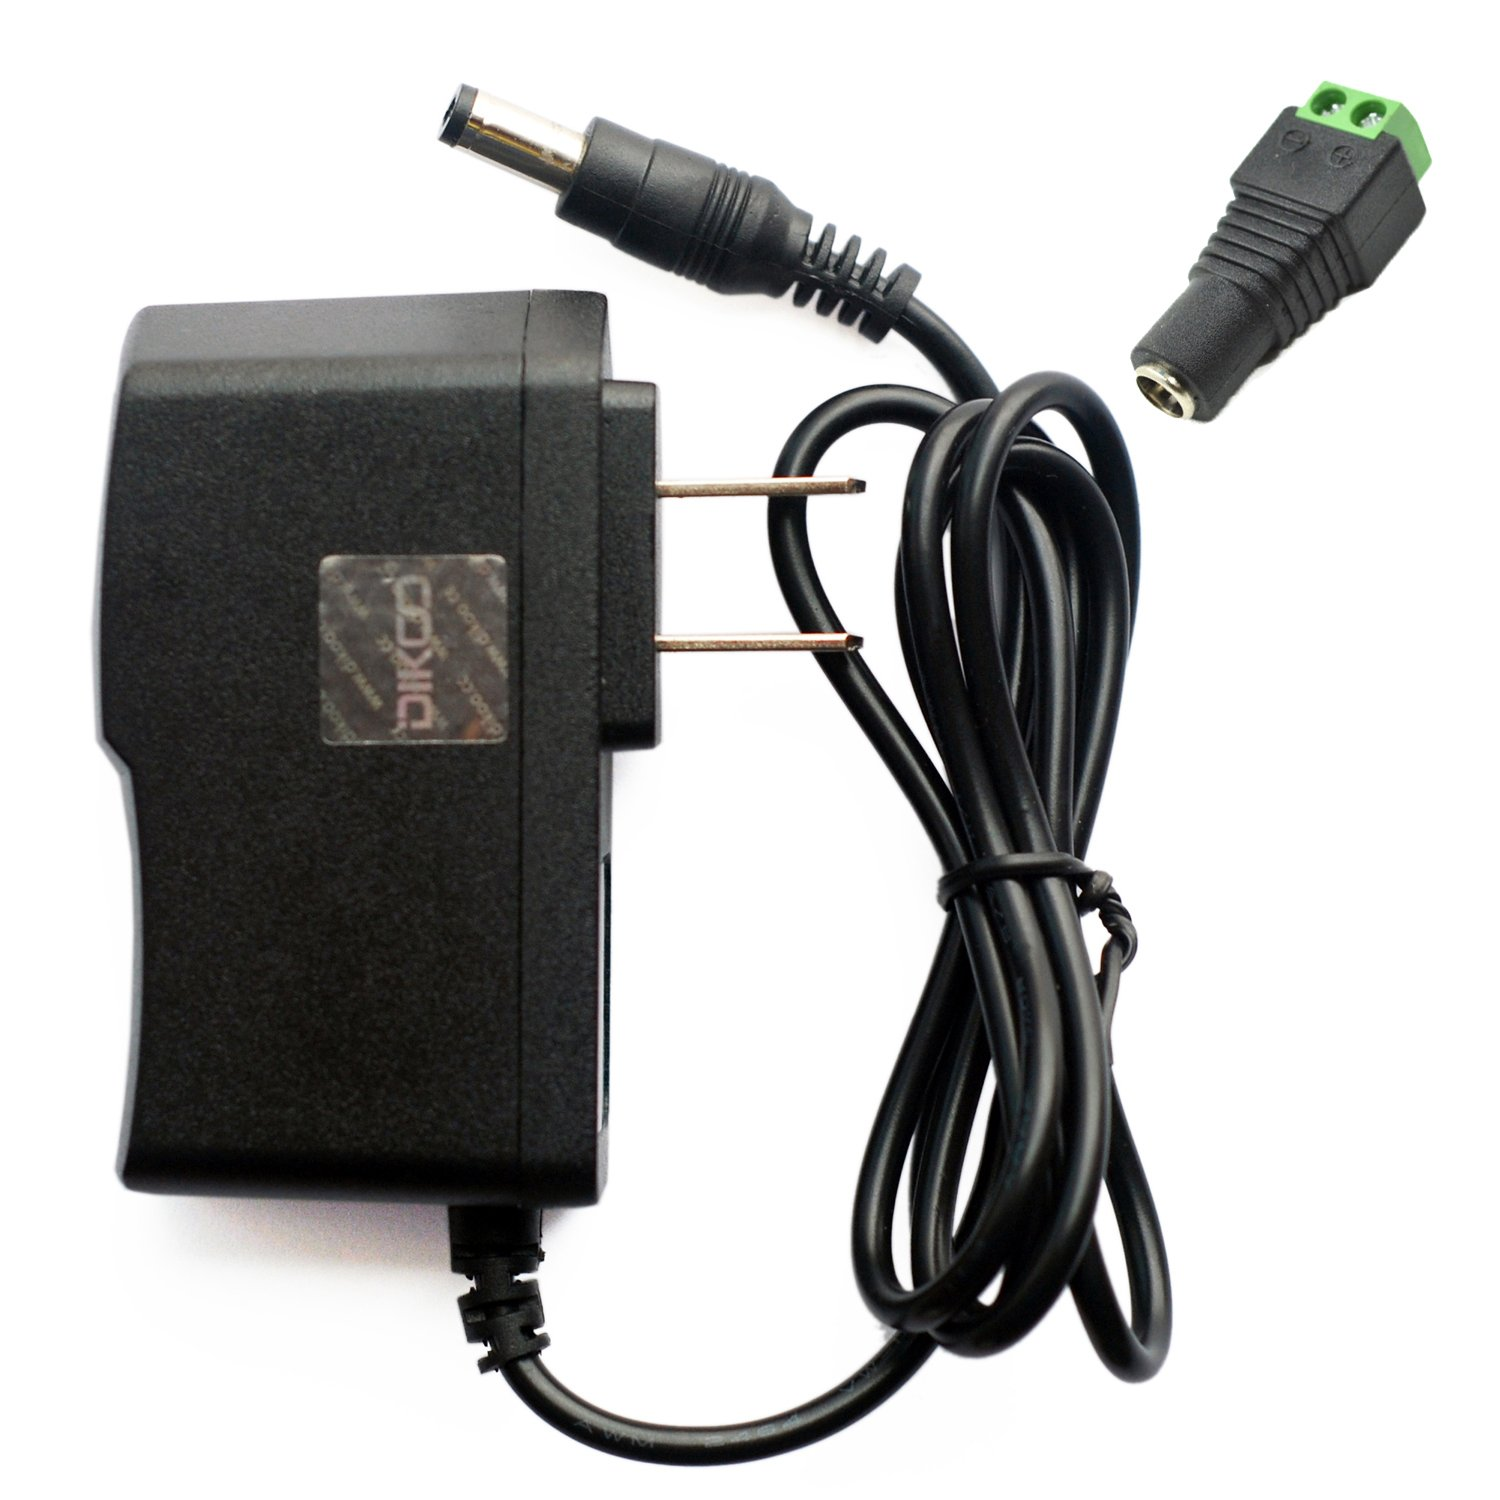 DIKOO AC Adapter Power Supply 6V 1A Wall Charger DC Adapter 2M Note: plesae Check The Output Size on The Picture 6.56ft Length US Plug